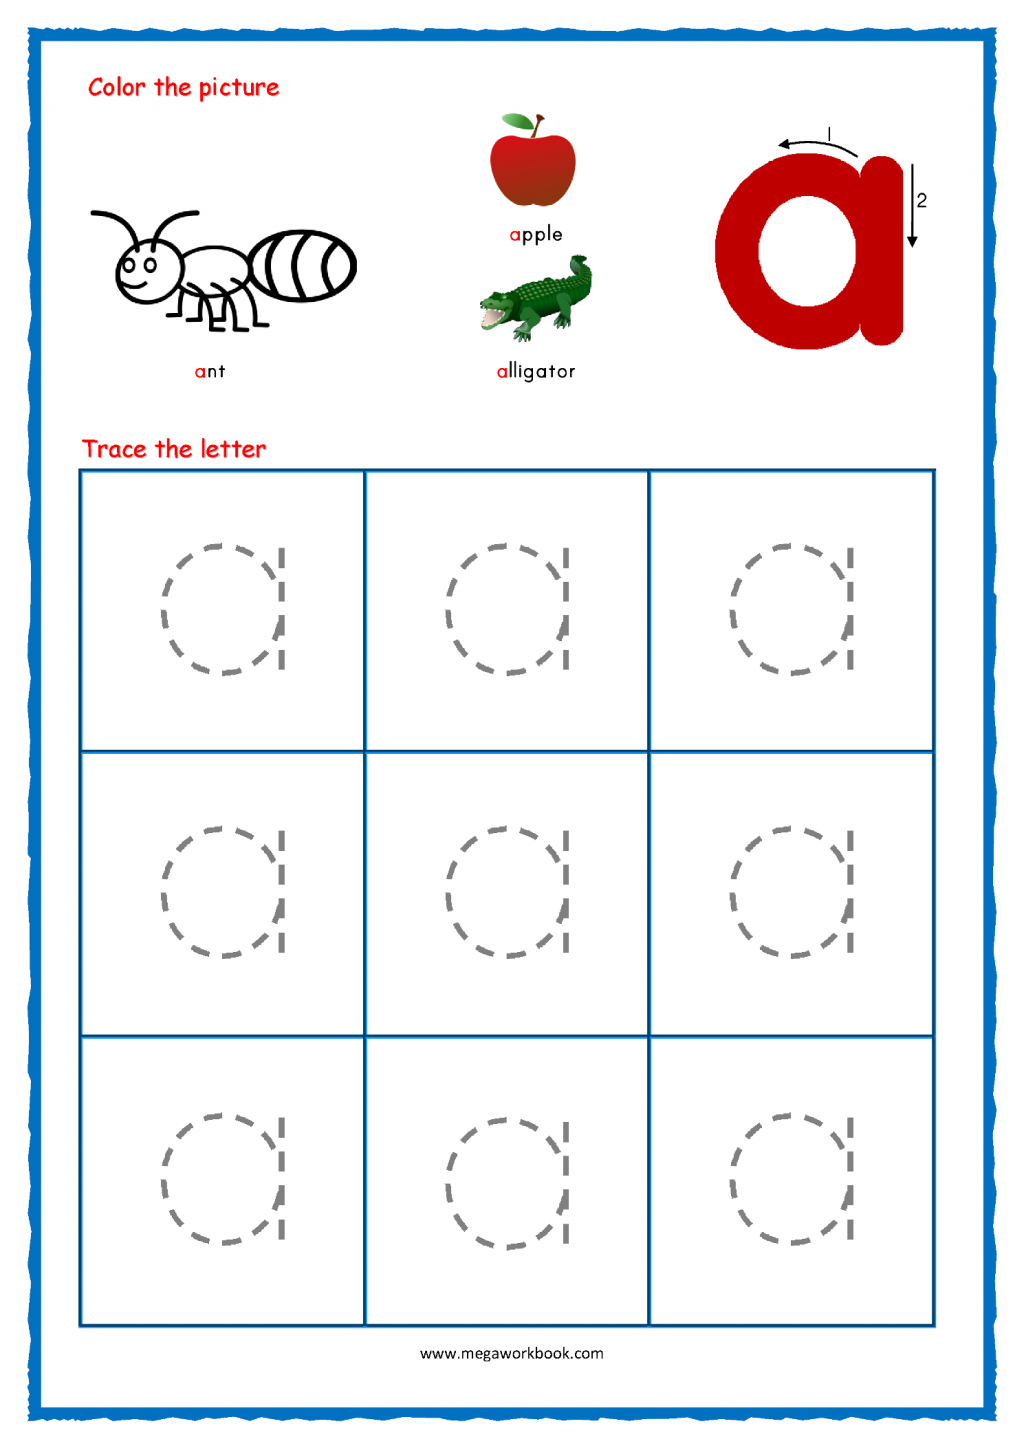 Worksheet ~ Pre Writingcing Sheets Pdf Free Printable Name